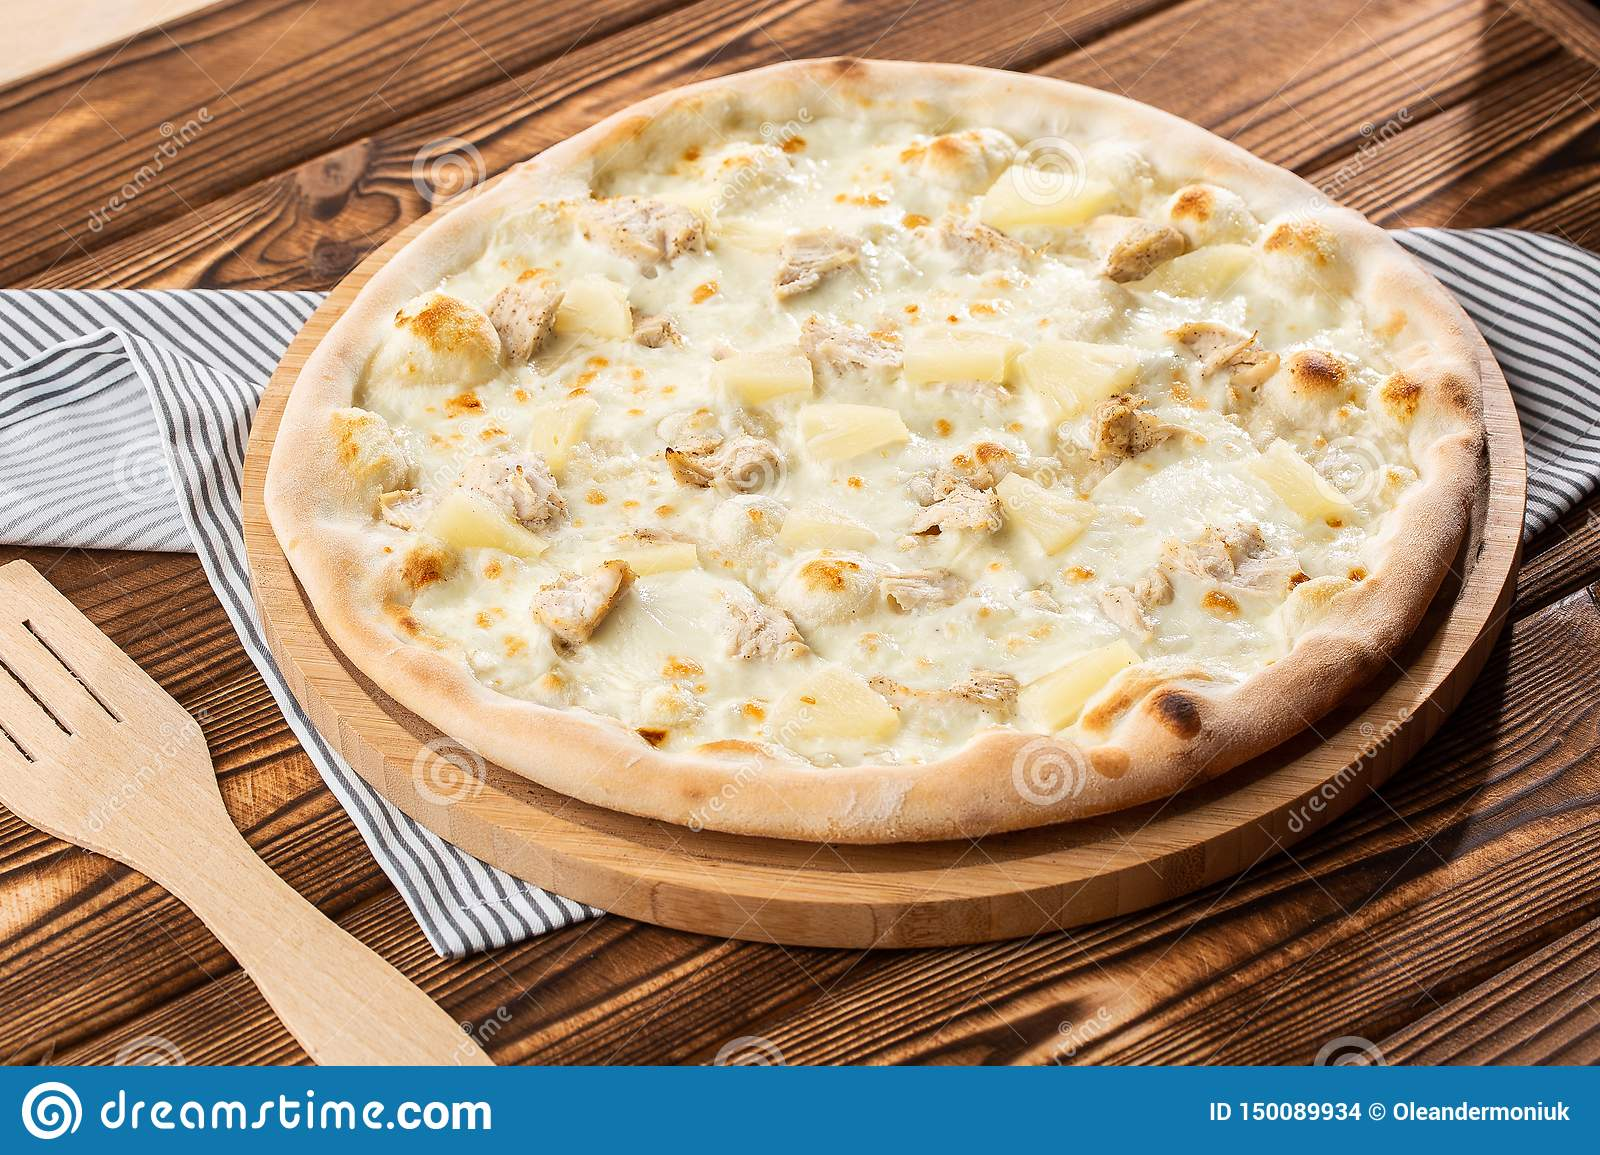 Pizza topped with sauce, chicken, cheese and pineapple serve on wooden plate on wooden table. Photo of Hawaiian pizza.